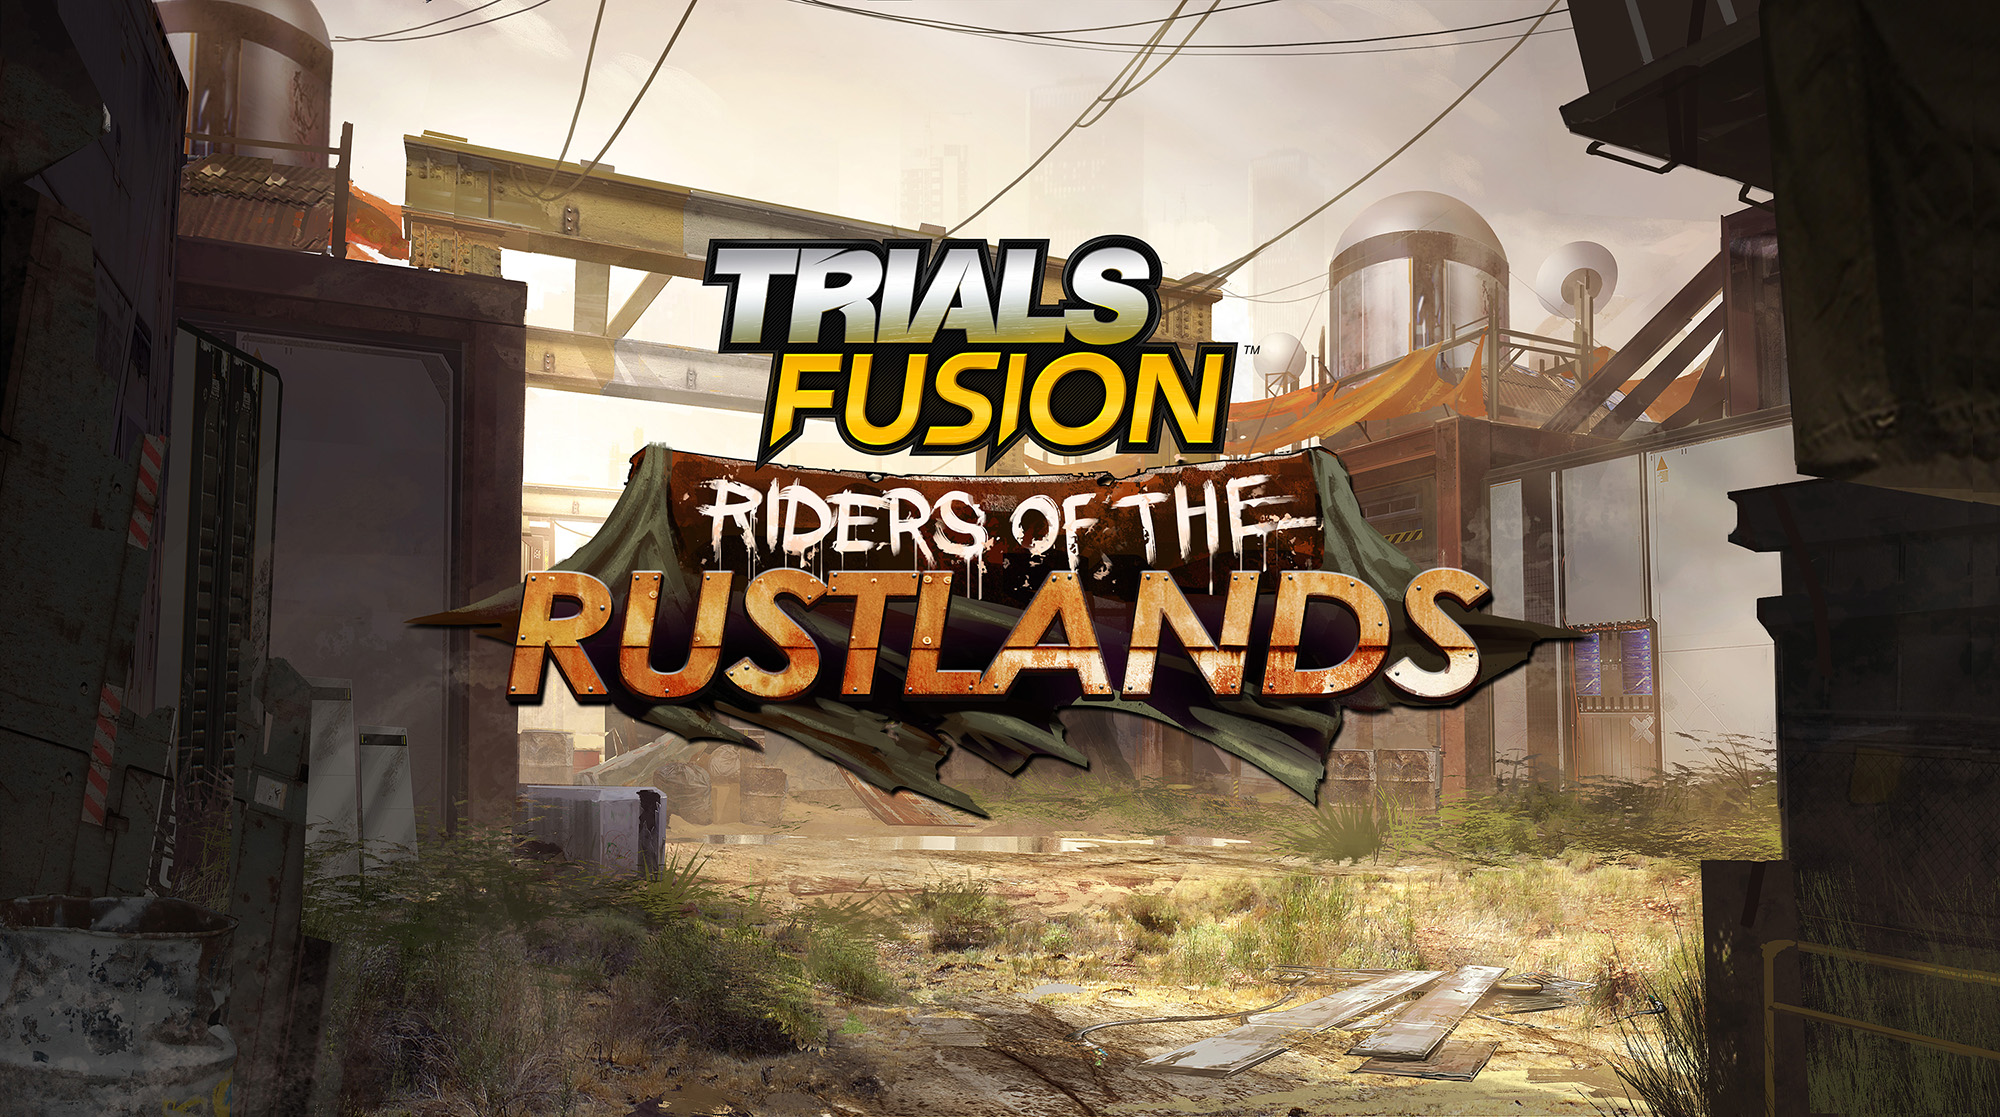 1404320627-riders-of-the-rustlands-key-art